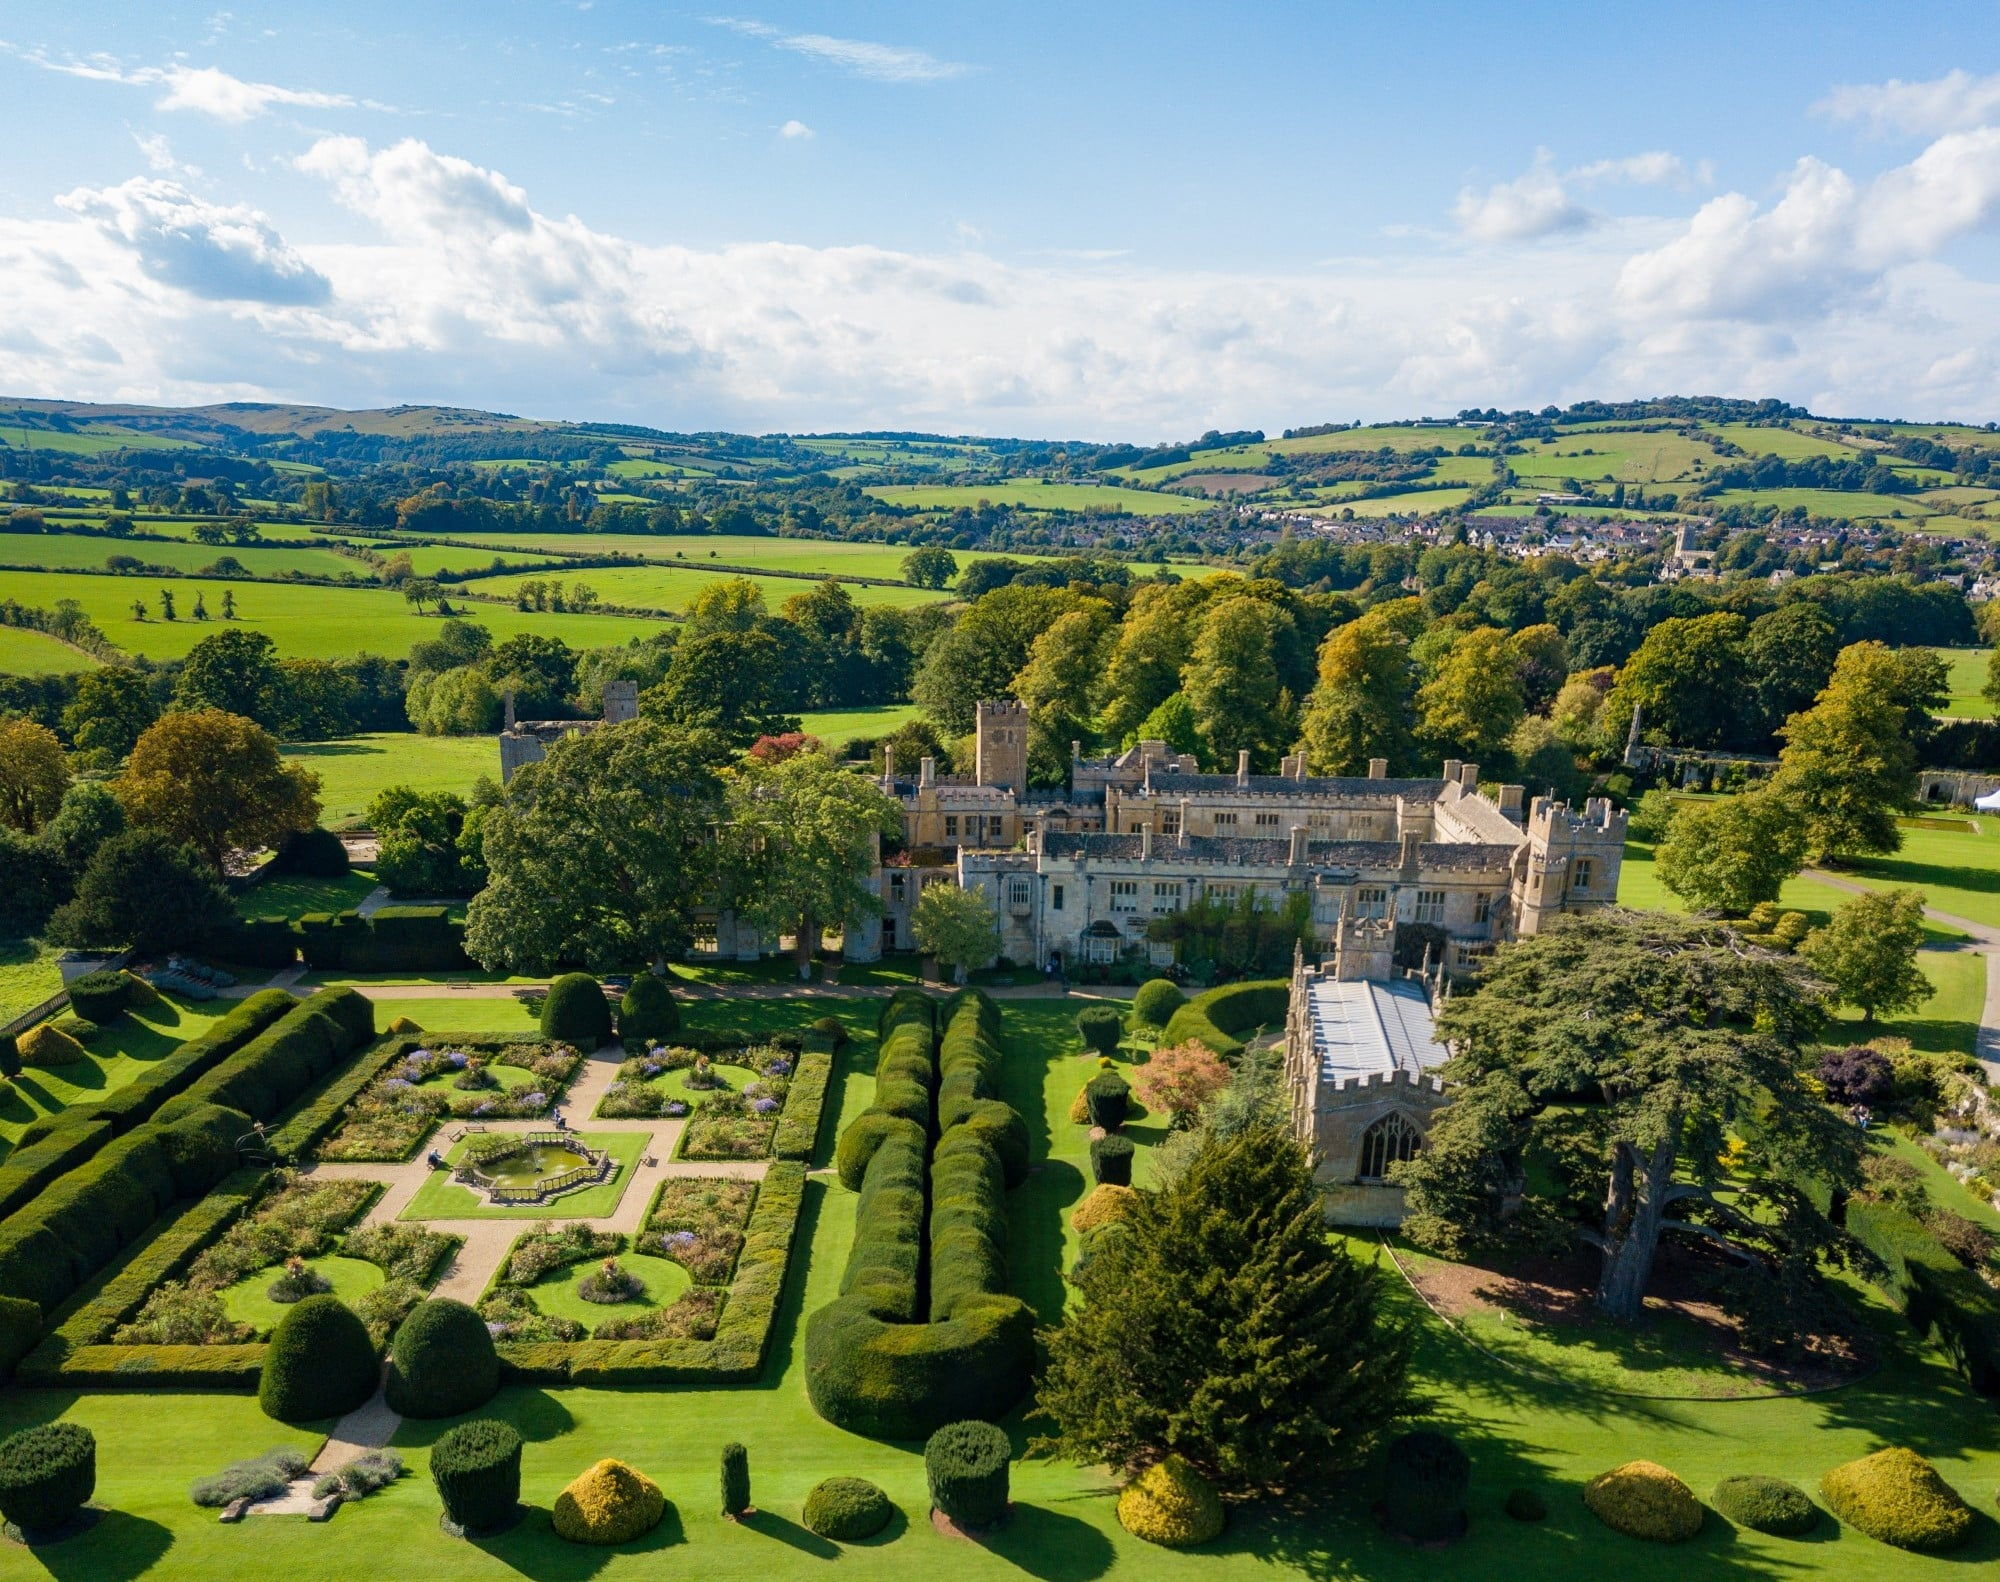 Sudeley-castle-and-gardens.jpg